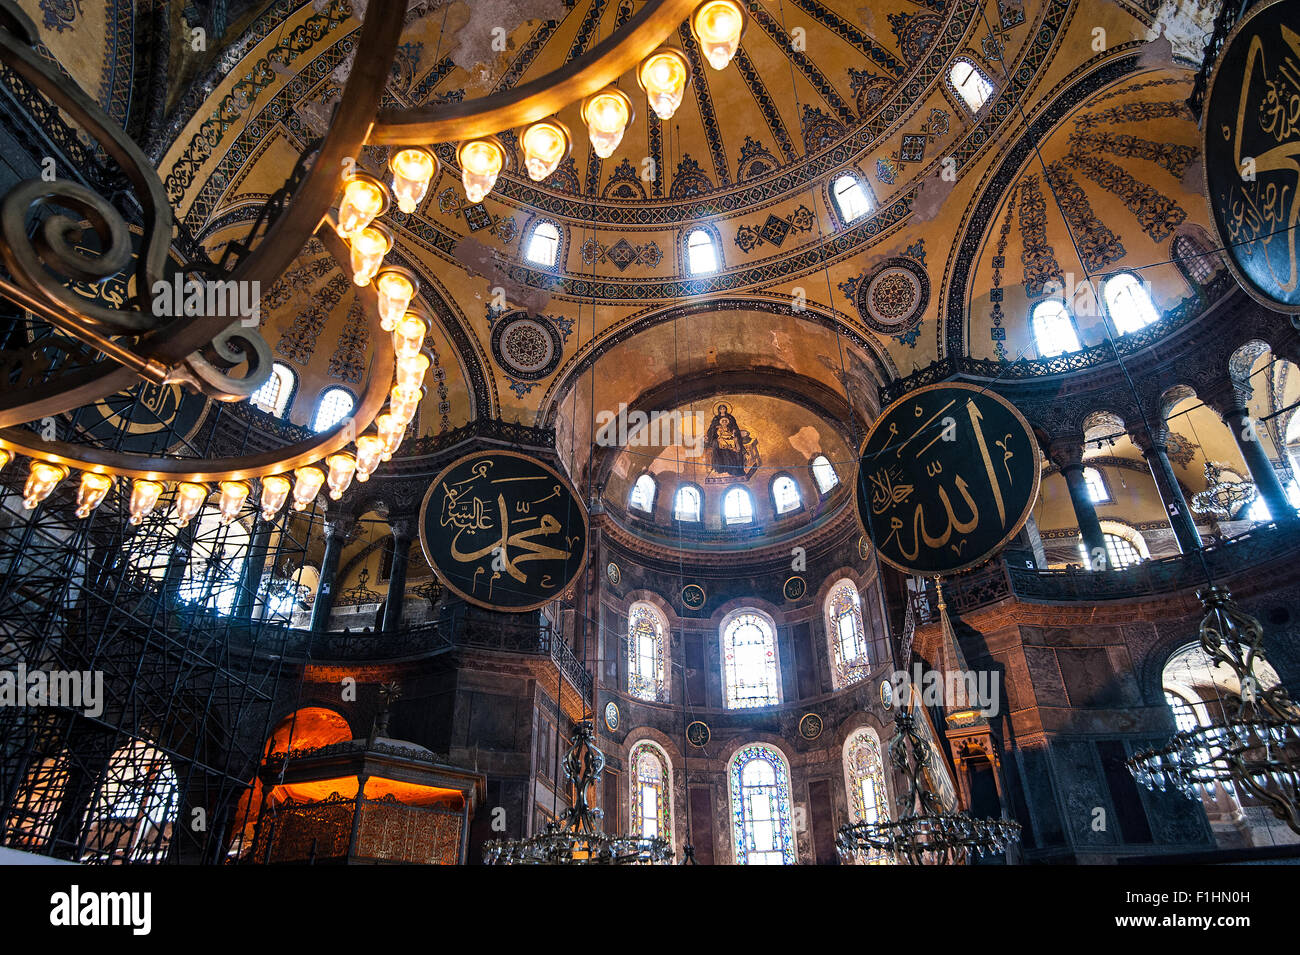 TURKEY, ISTANBUL: The Hagia Sophia is one of Istanbul's historical highlights in Sultanahmet, the historical - Stock Image